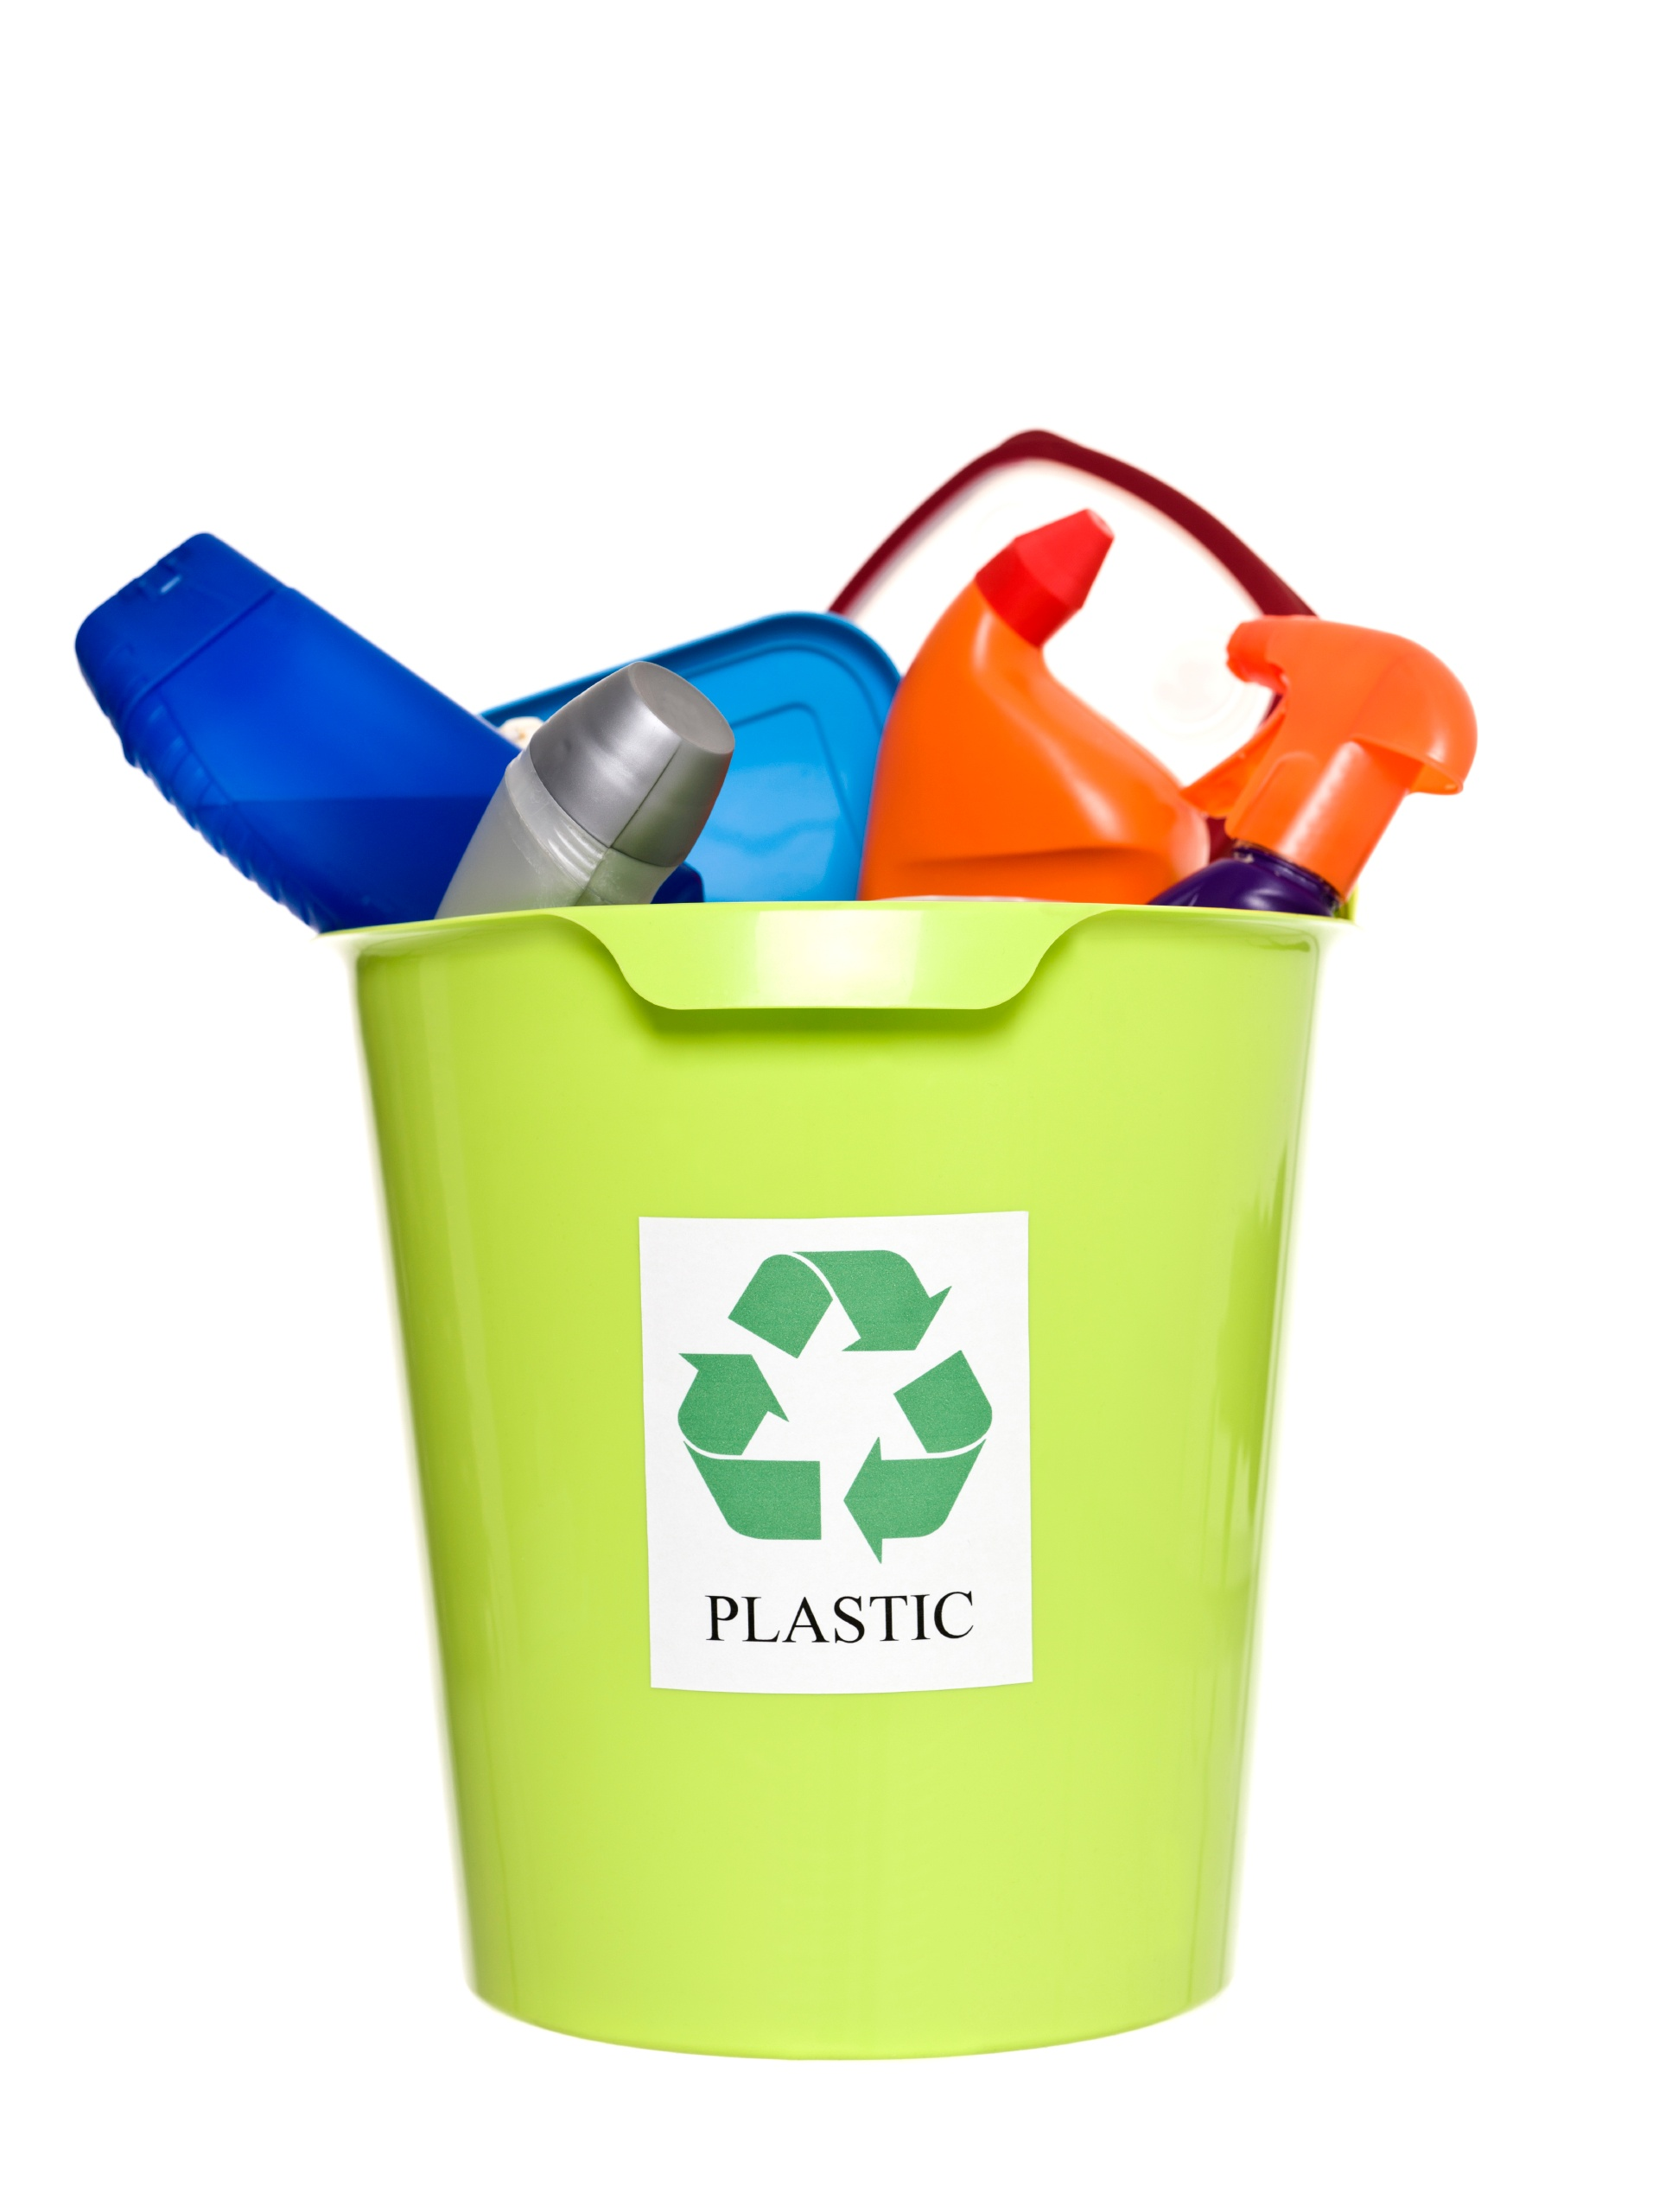 3 Surprising Stats from the 2015 Paper & Plastic Recycling Conference